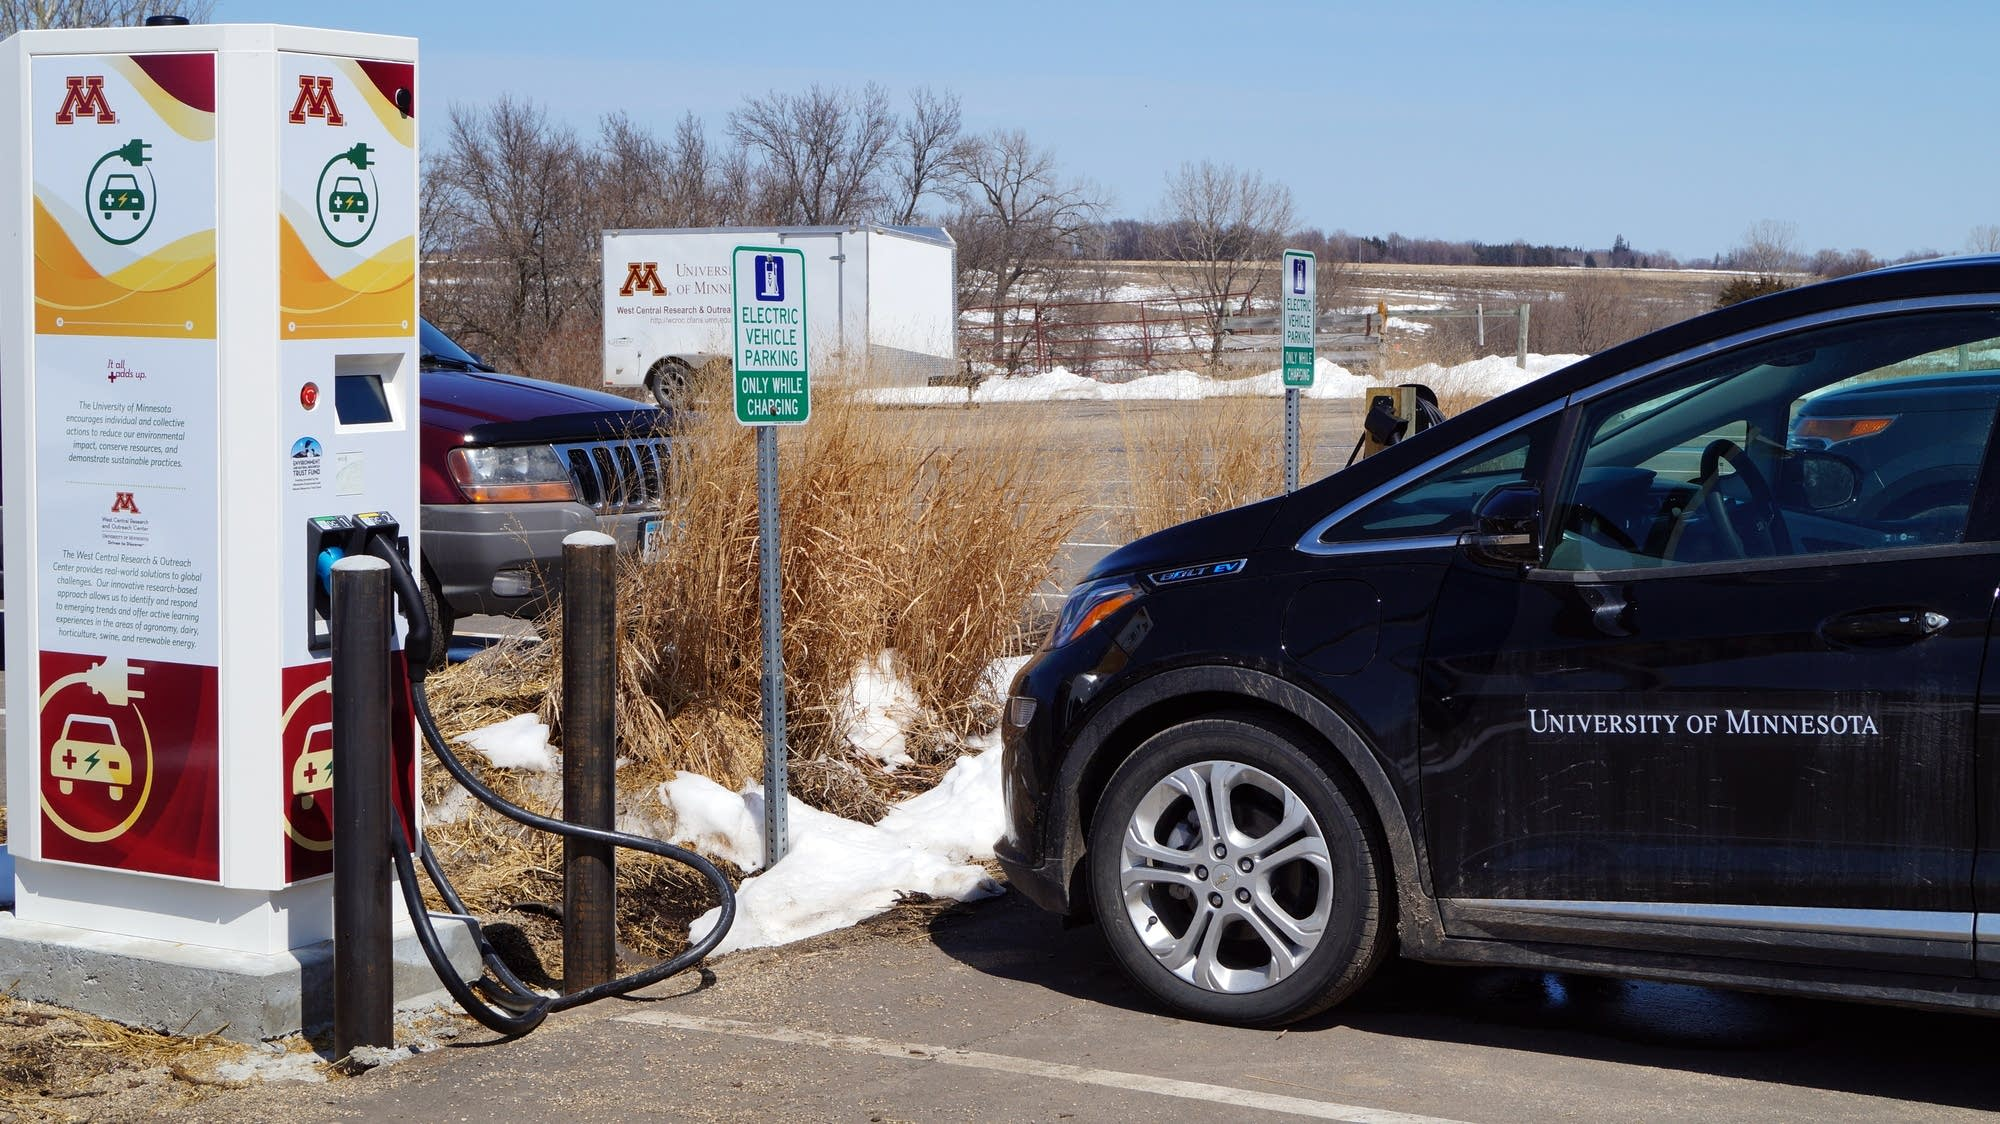 A New Fast Charger For Electric Vehicles At The U Of M Morris